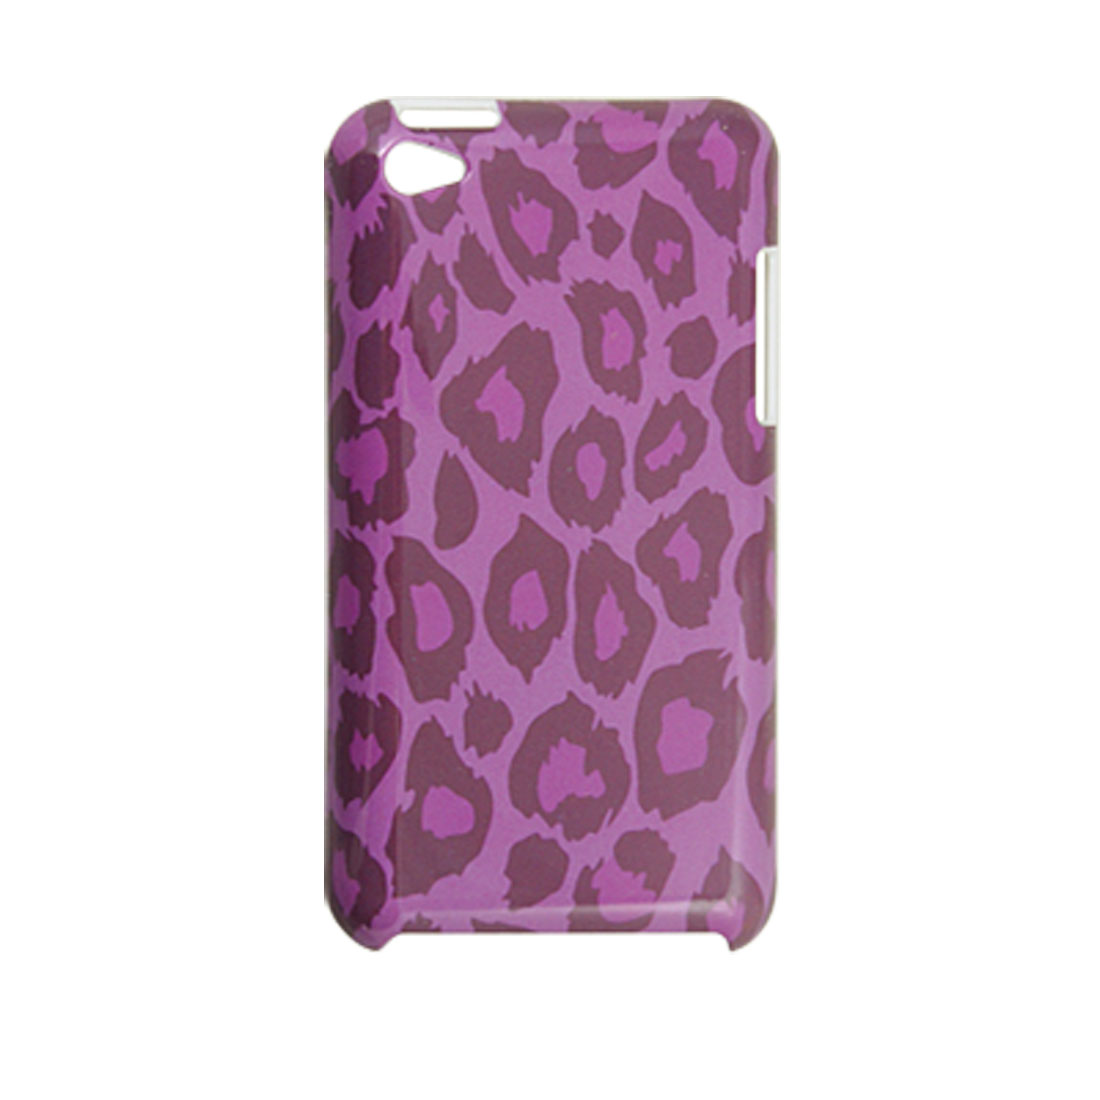 Leopard Print Fuchsia IMD Plastic Back Cover Case for iPod Touch 4G